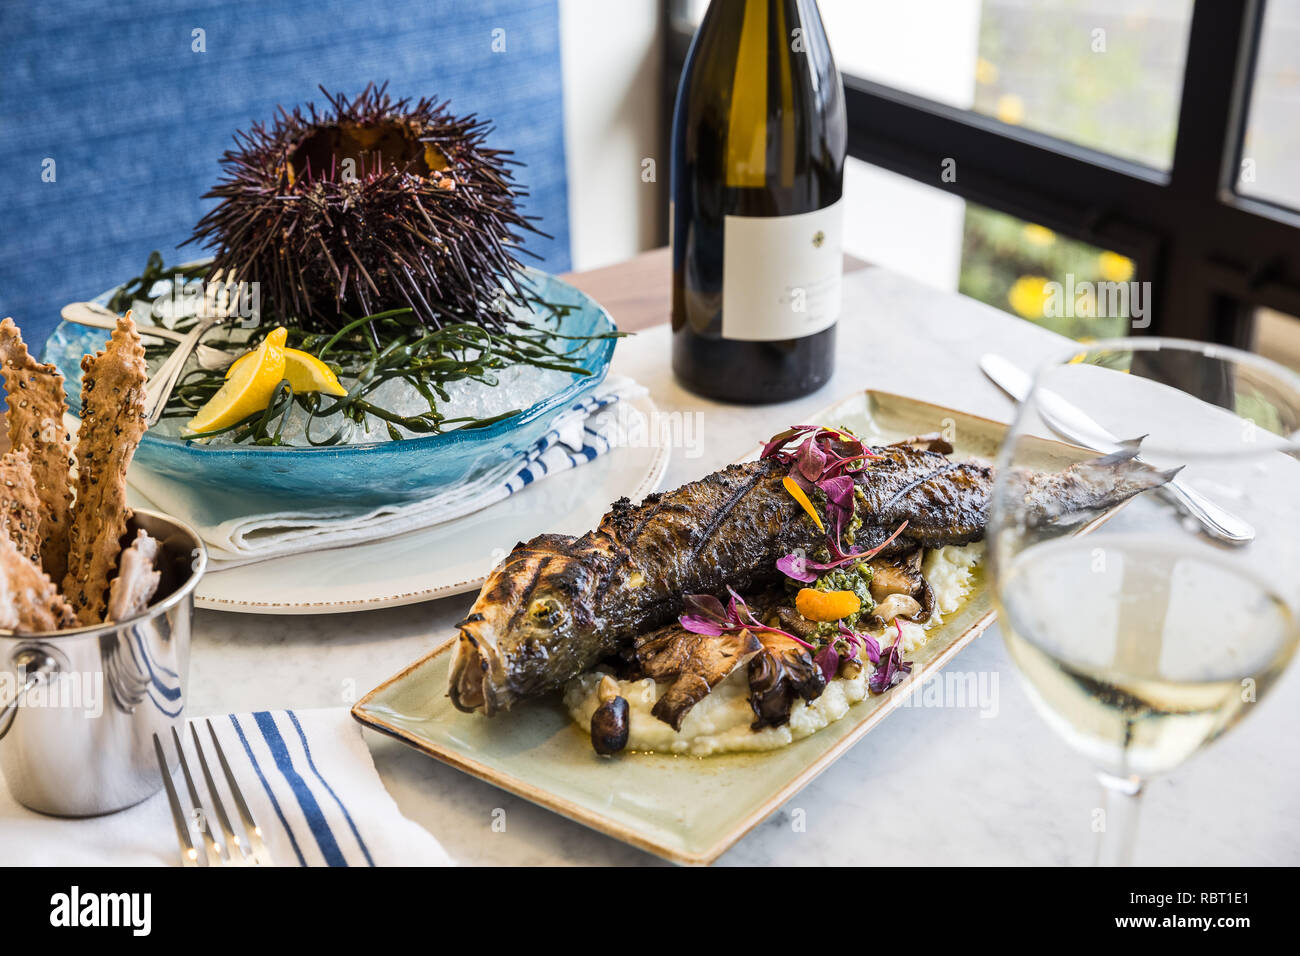 Seafood Table Setting with Grilled Snapper and Uni Sea Urchin - Stock Image